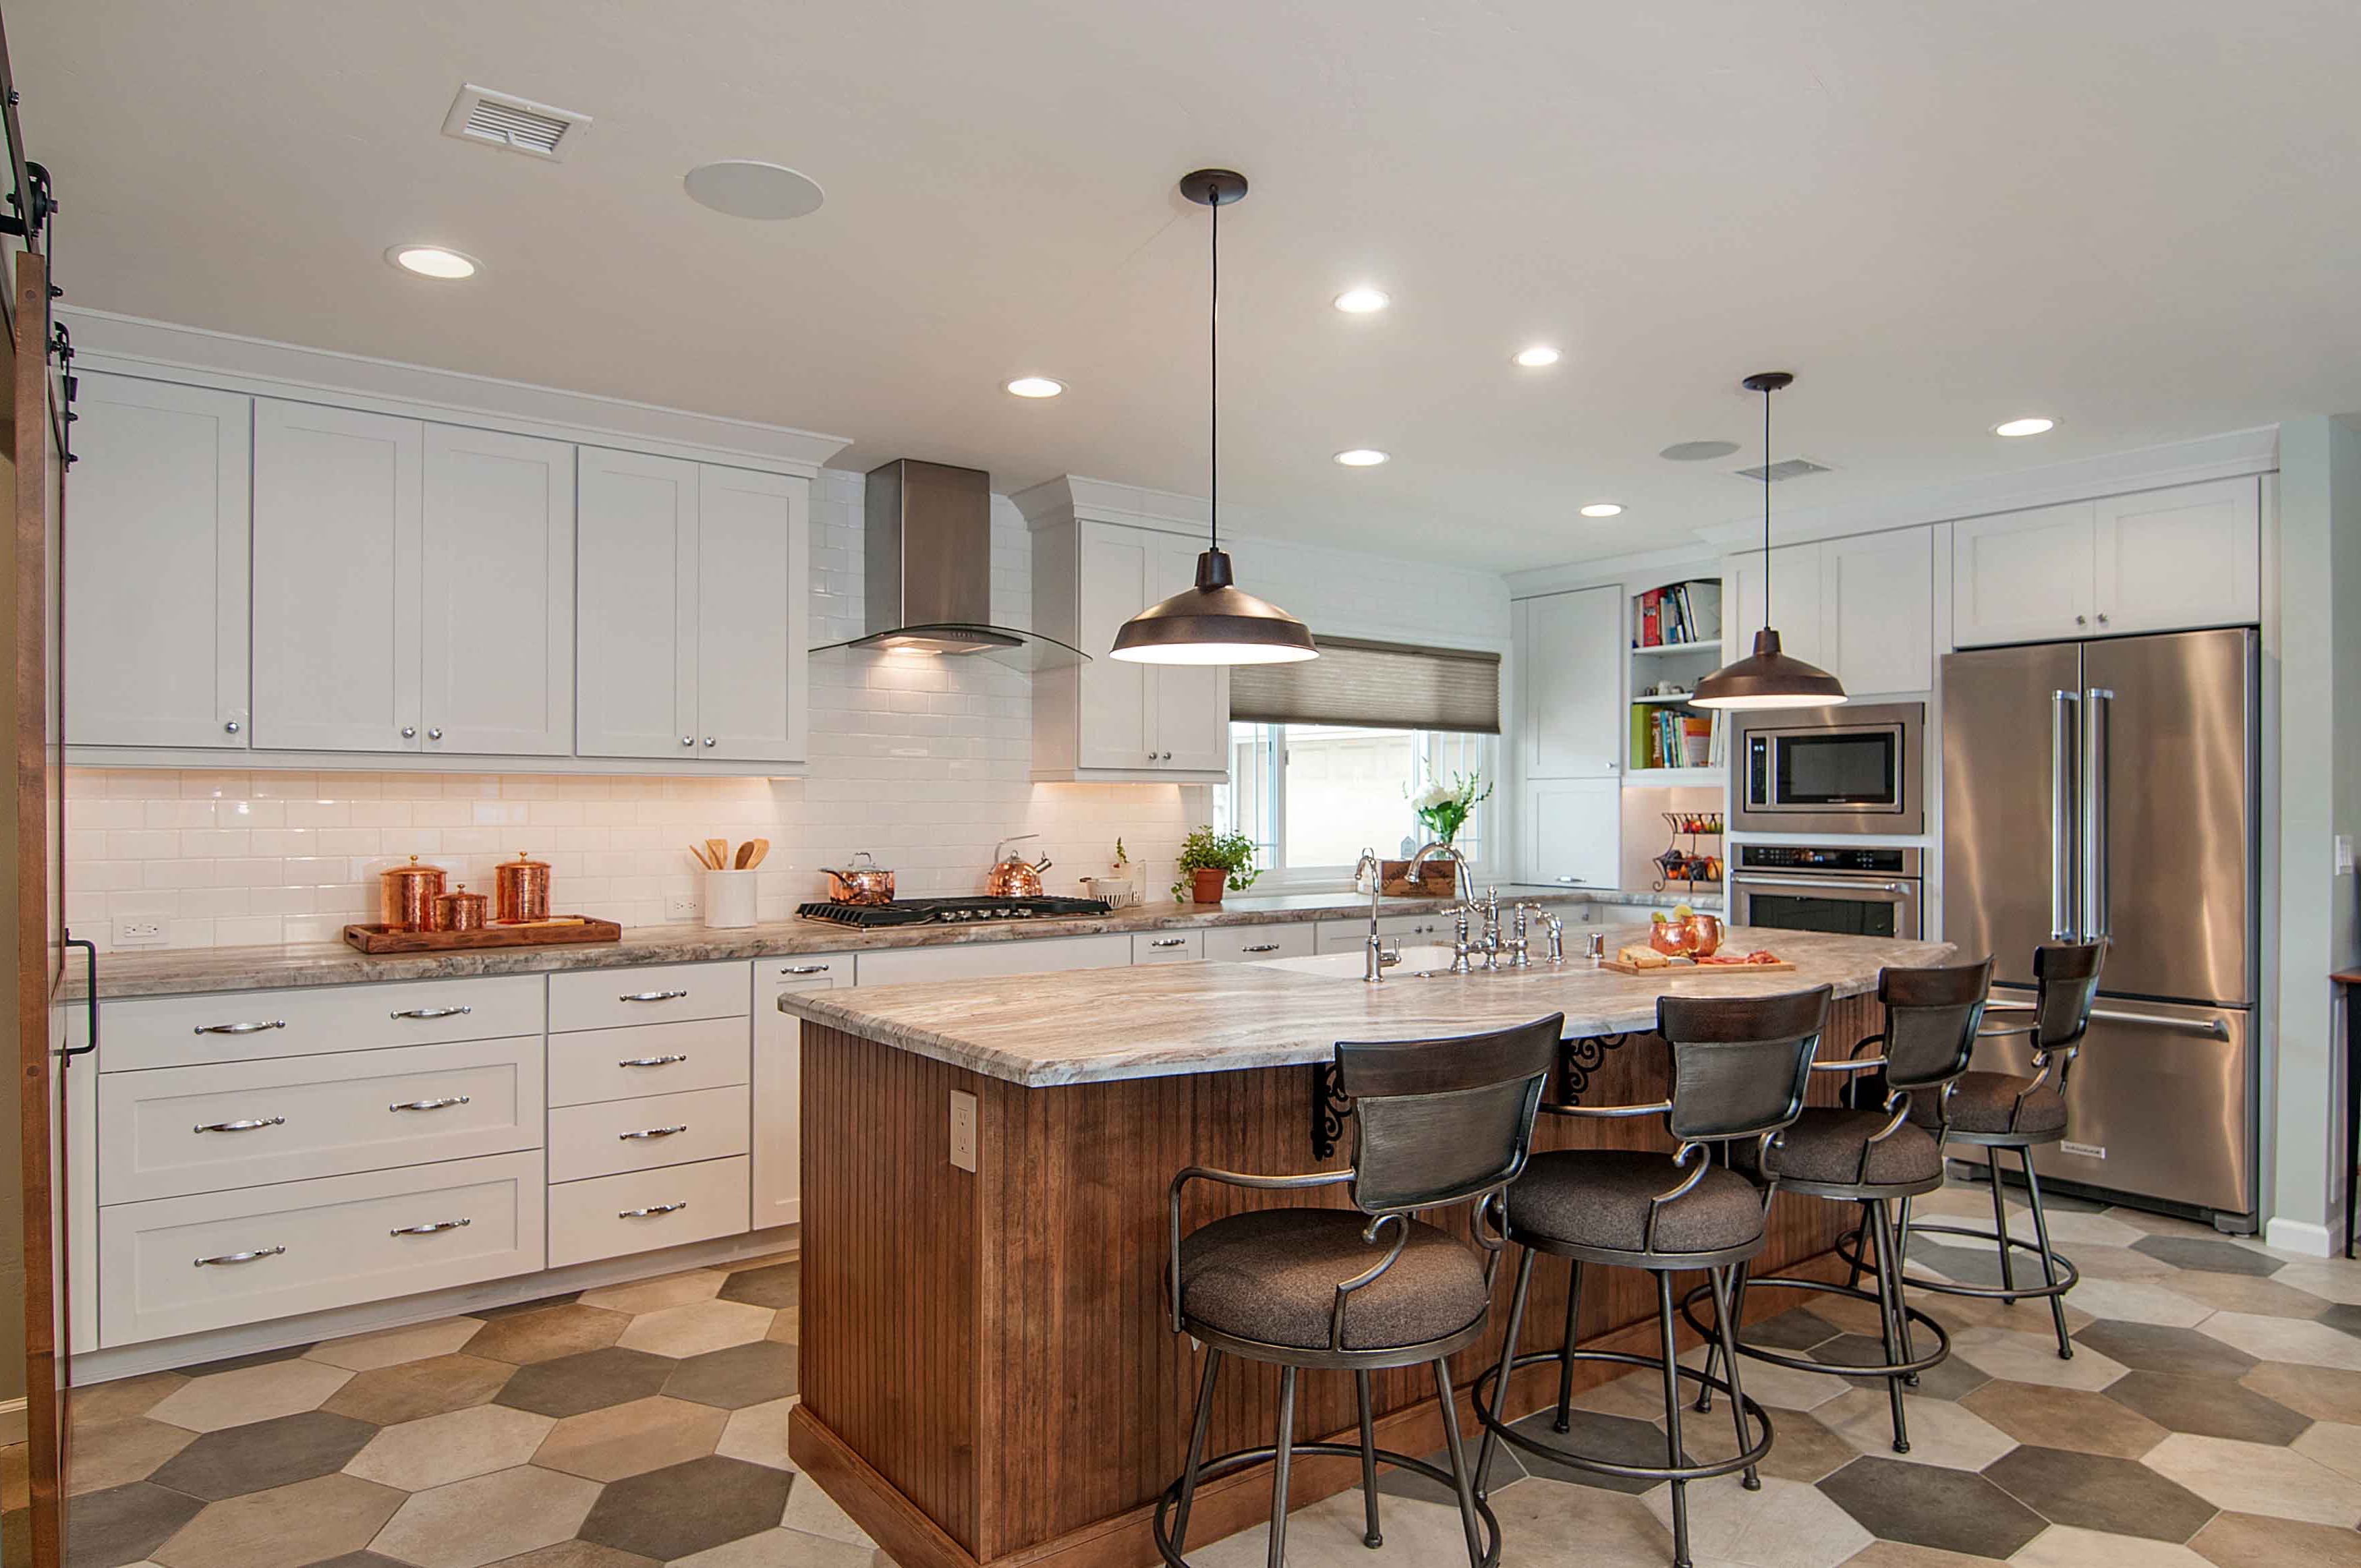 Large Open Kitchen Island With Neutral Marble Countertop, Taupe Bar Chairs And Pendant Lights (Image 4 of 23)